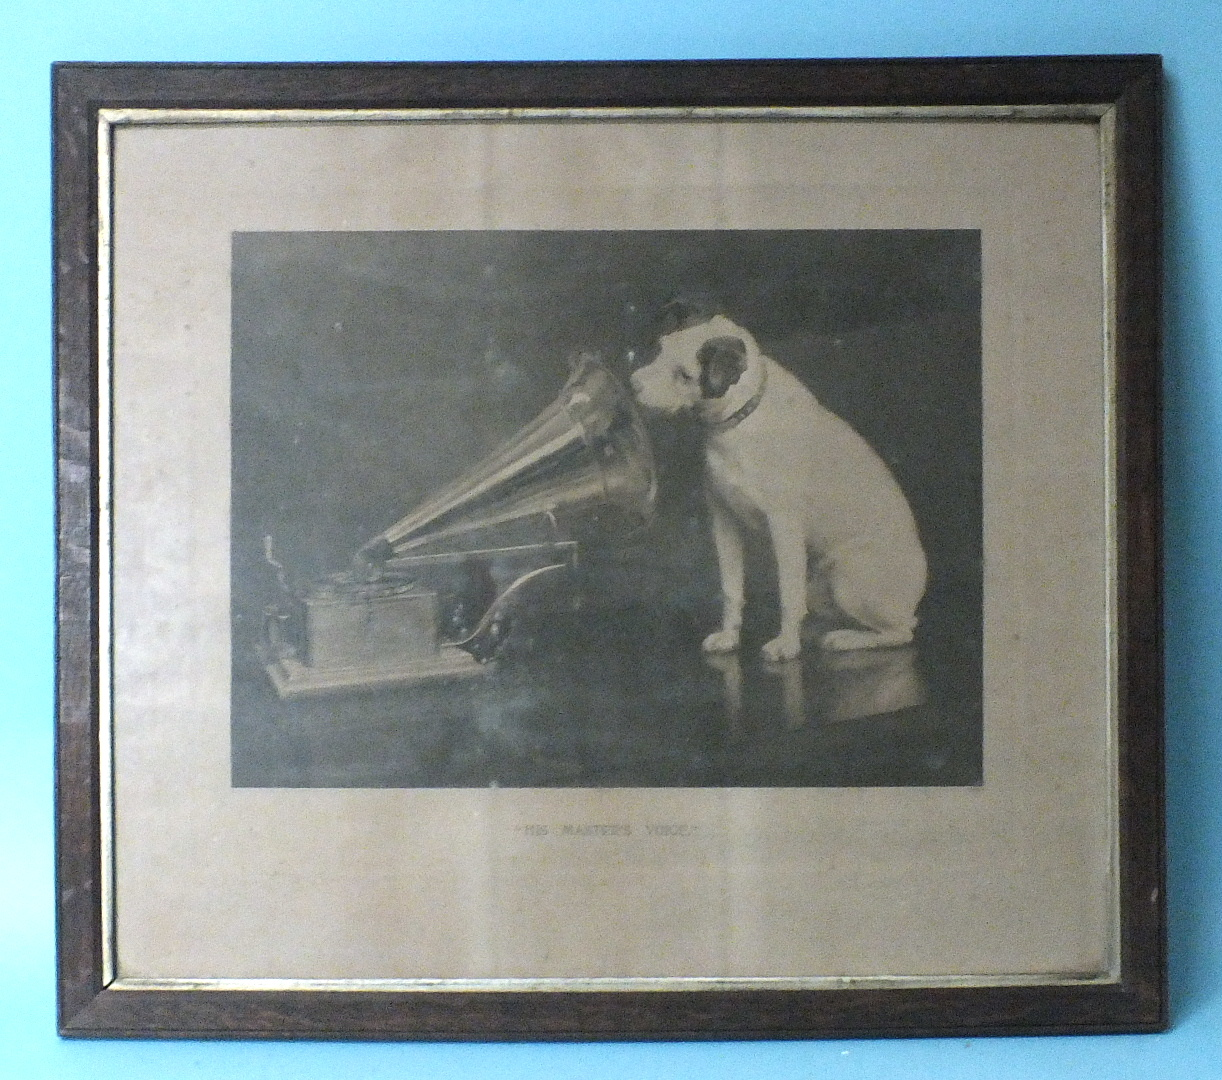 Lot 36 - His Master's Voice, a sepia print of the painting by Francis Barraud, framed and glazed, 61 x 69cm